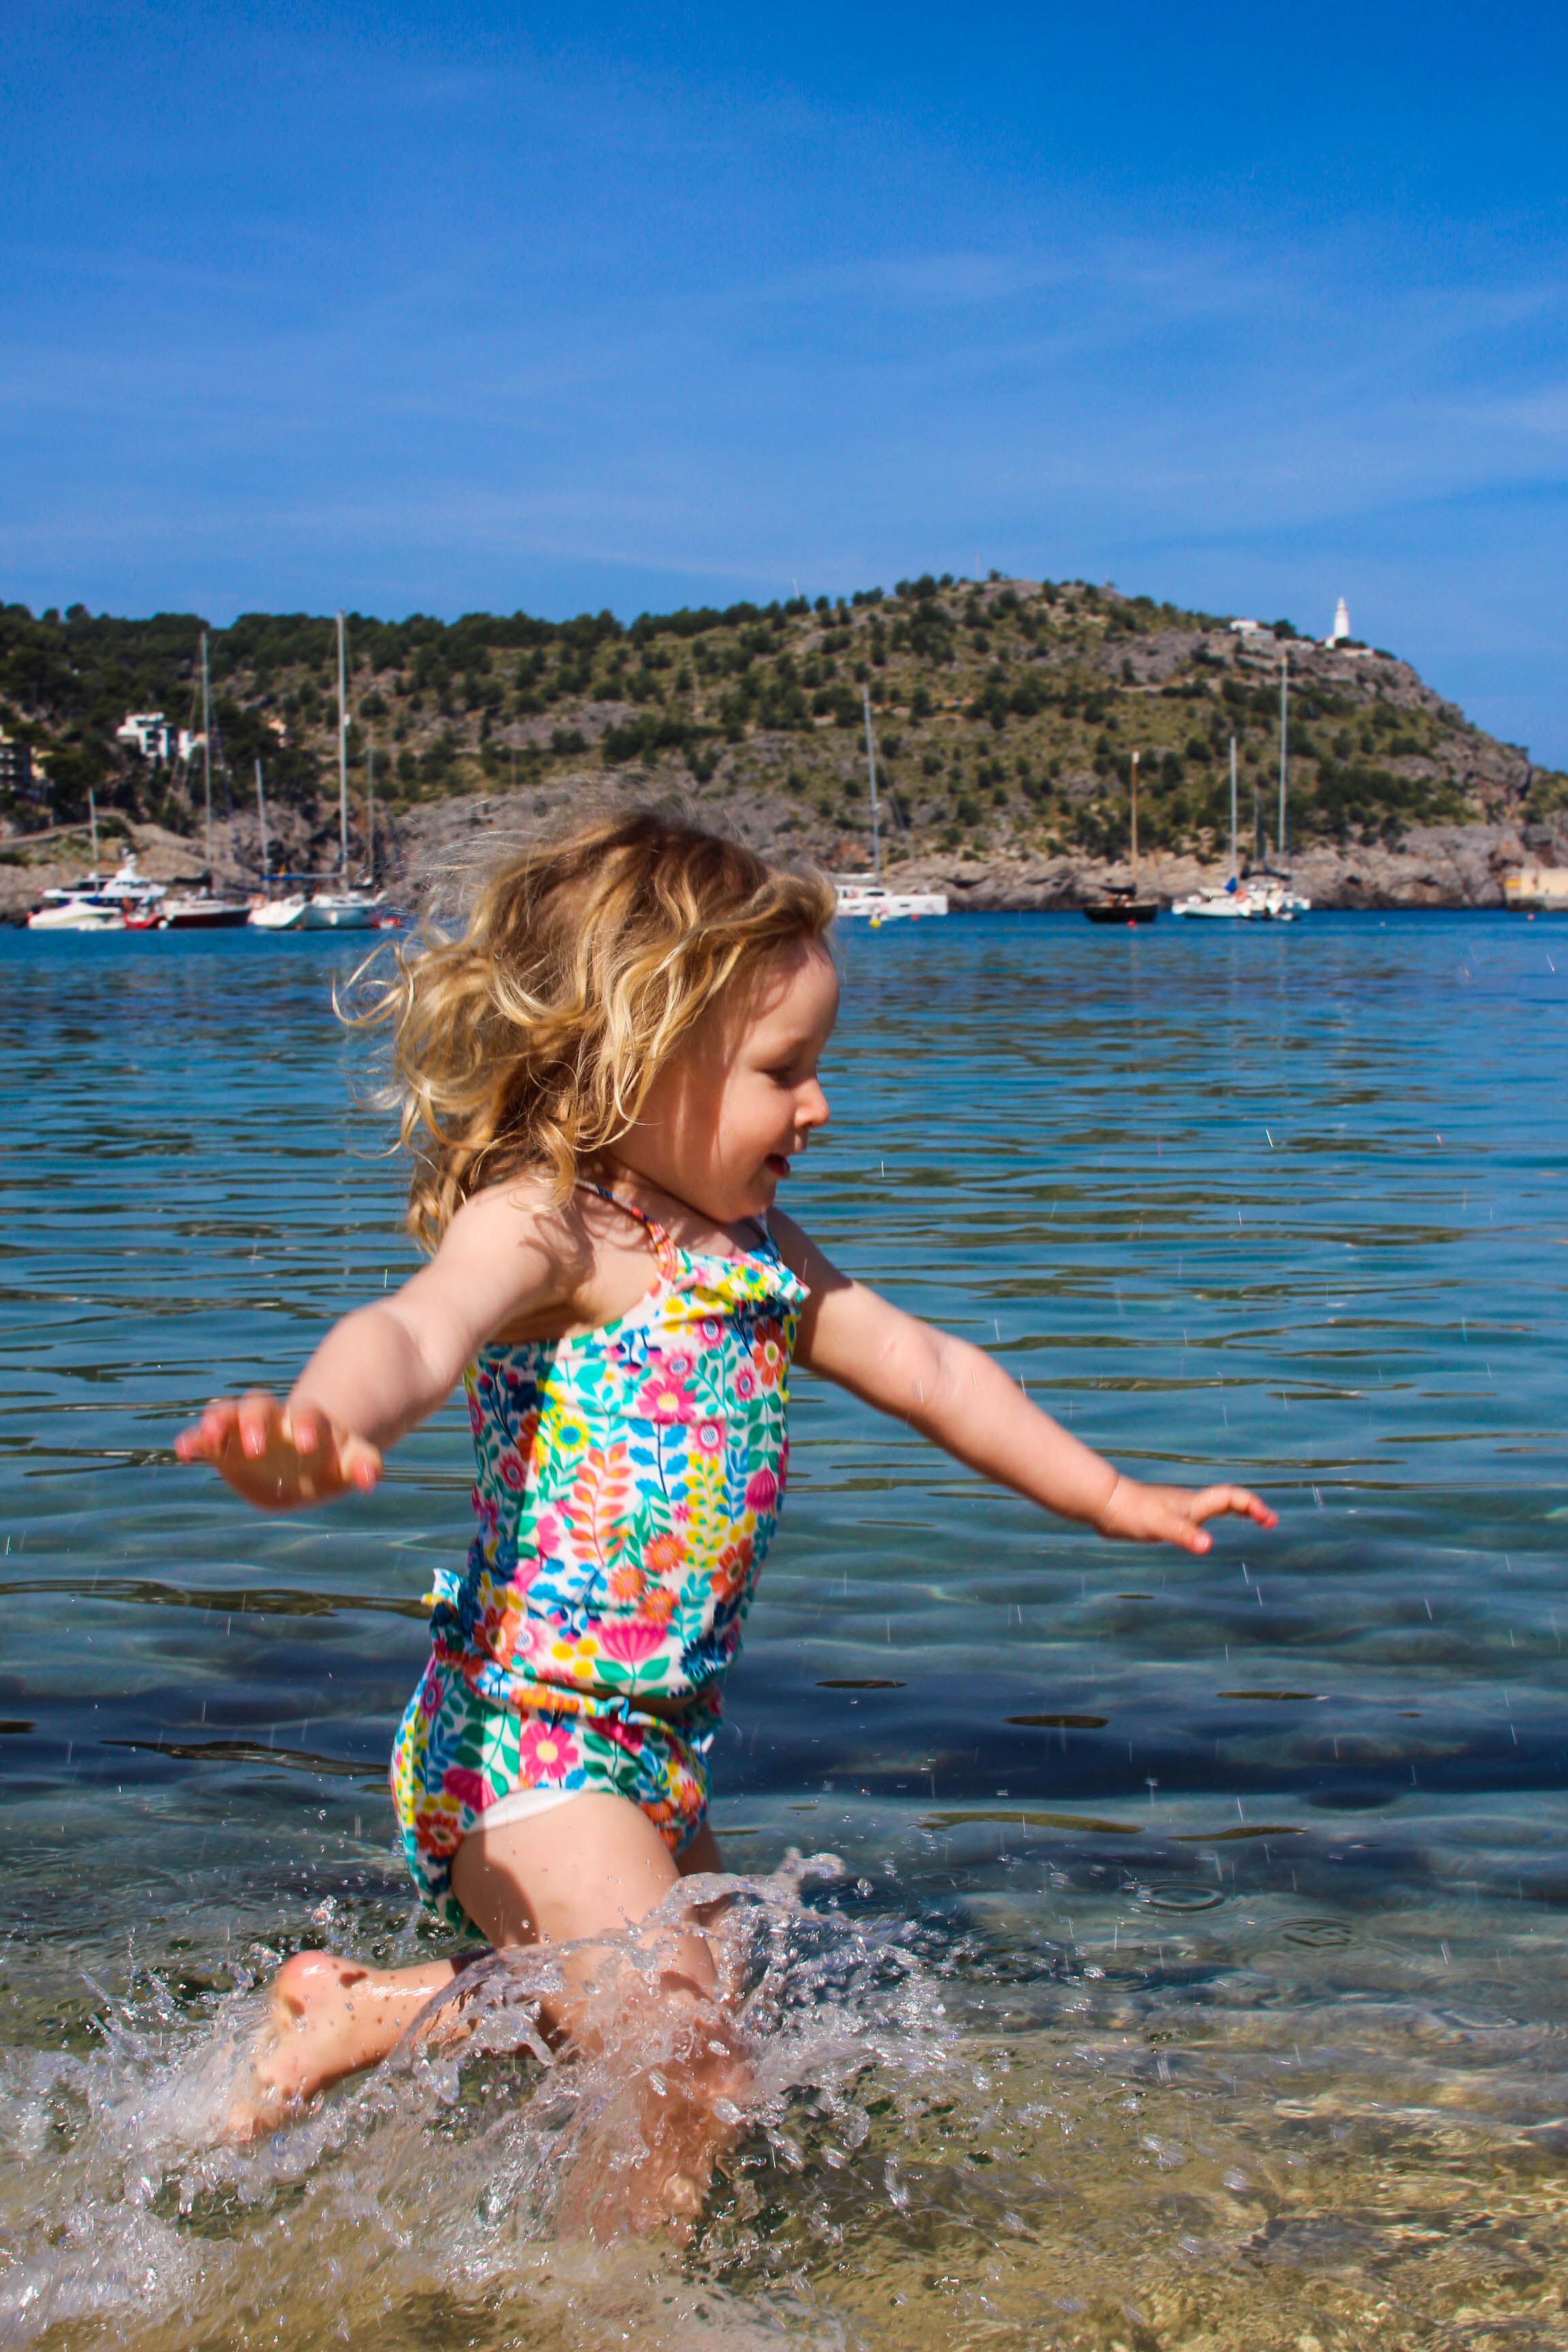 Frolicking in the crystal clear waters of Mallorca